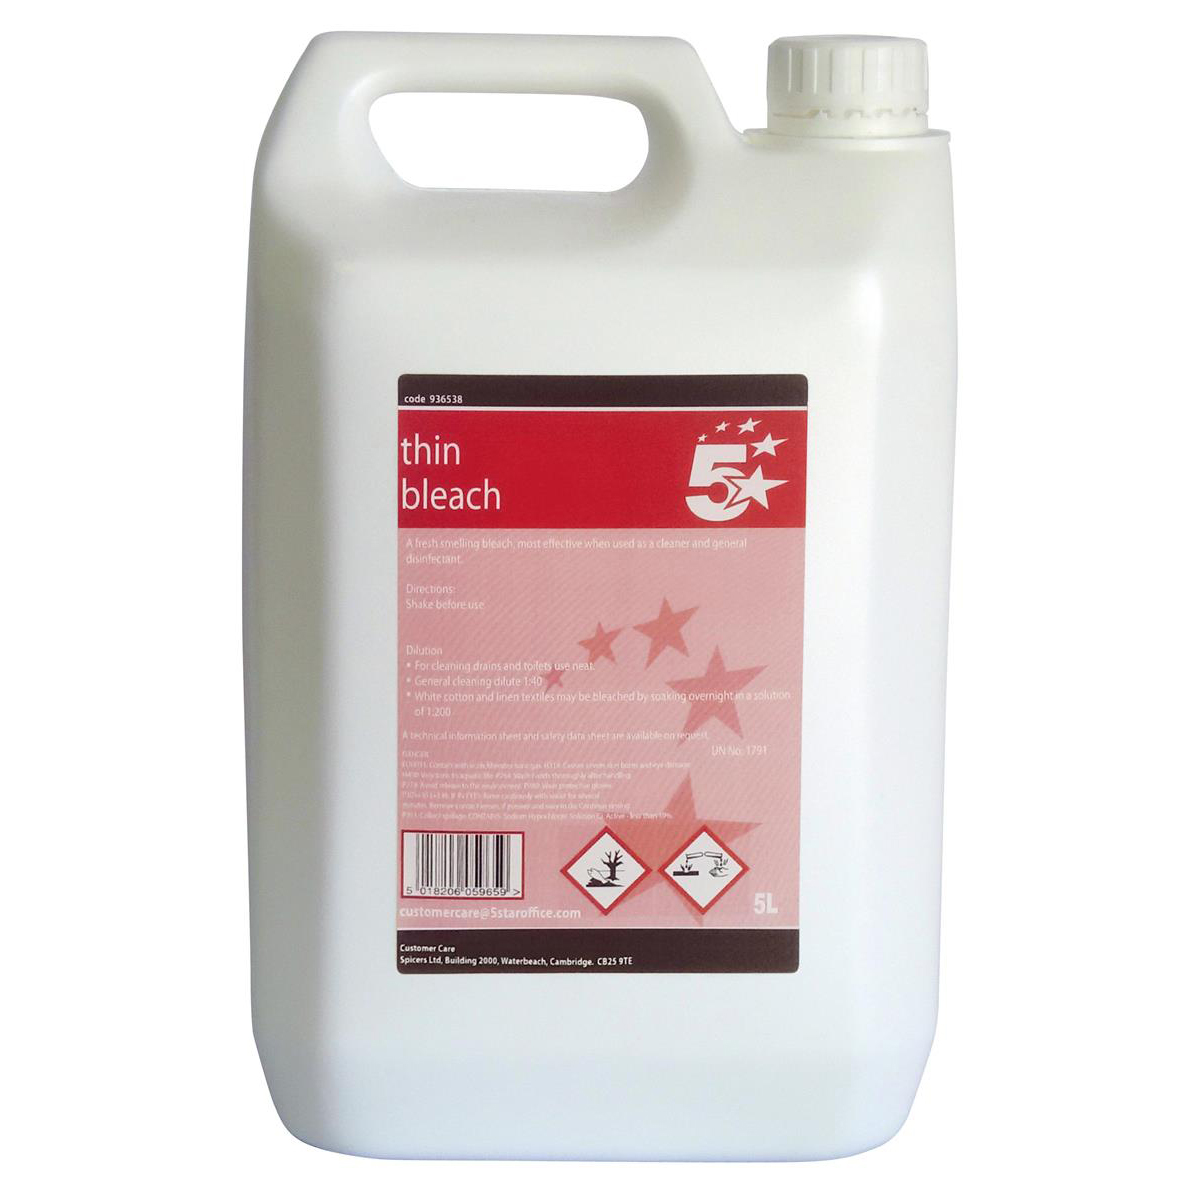 Disinfectant 5 Star Facilities Thin Bleach General Purpose Cleaner 5 Litre